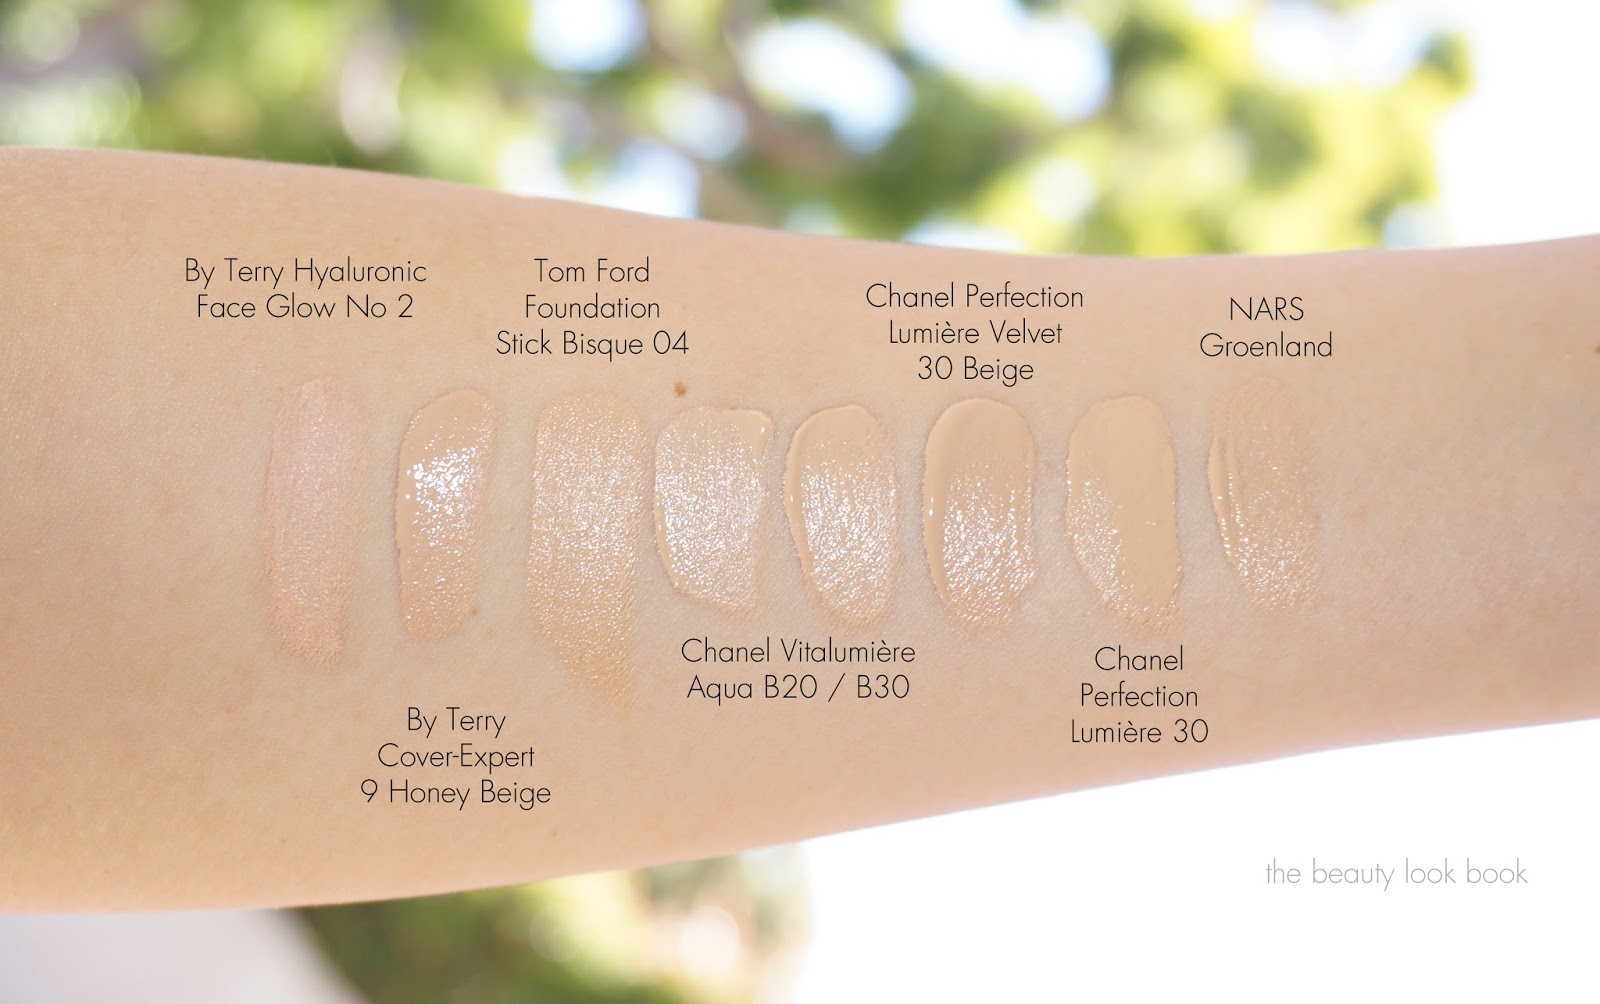 3f62ee68a6f2 In terms of formula comparisons to the new Perfection Lumière Velvet to  other Chanel foundations: